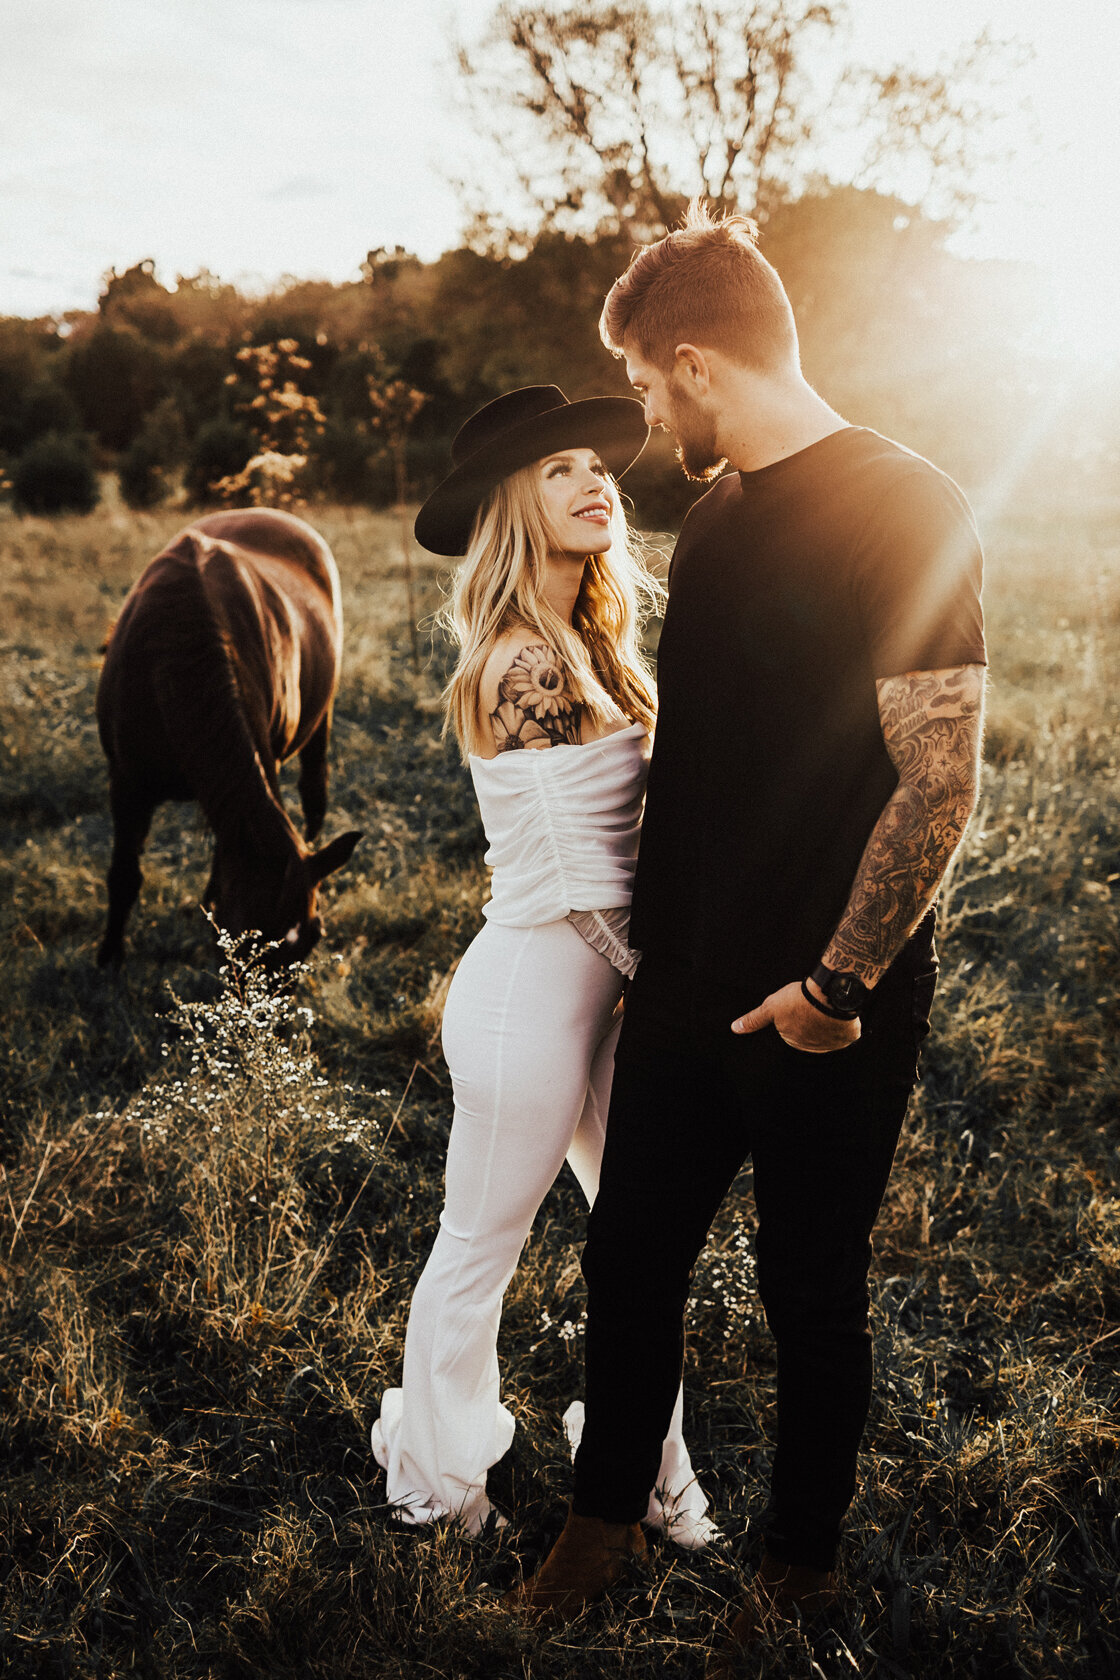 couple holding hands and smiling at each other with horses in a field